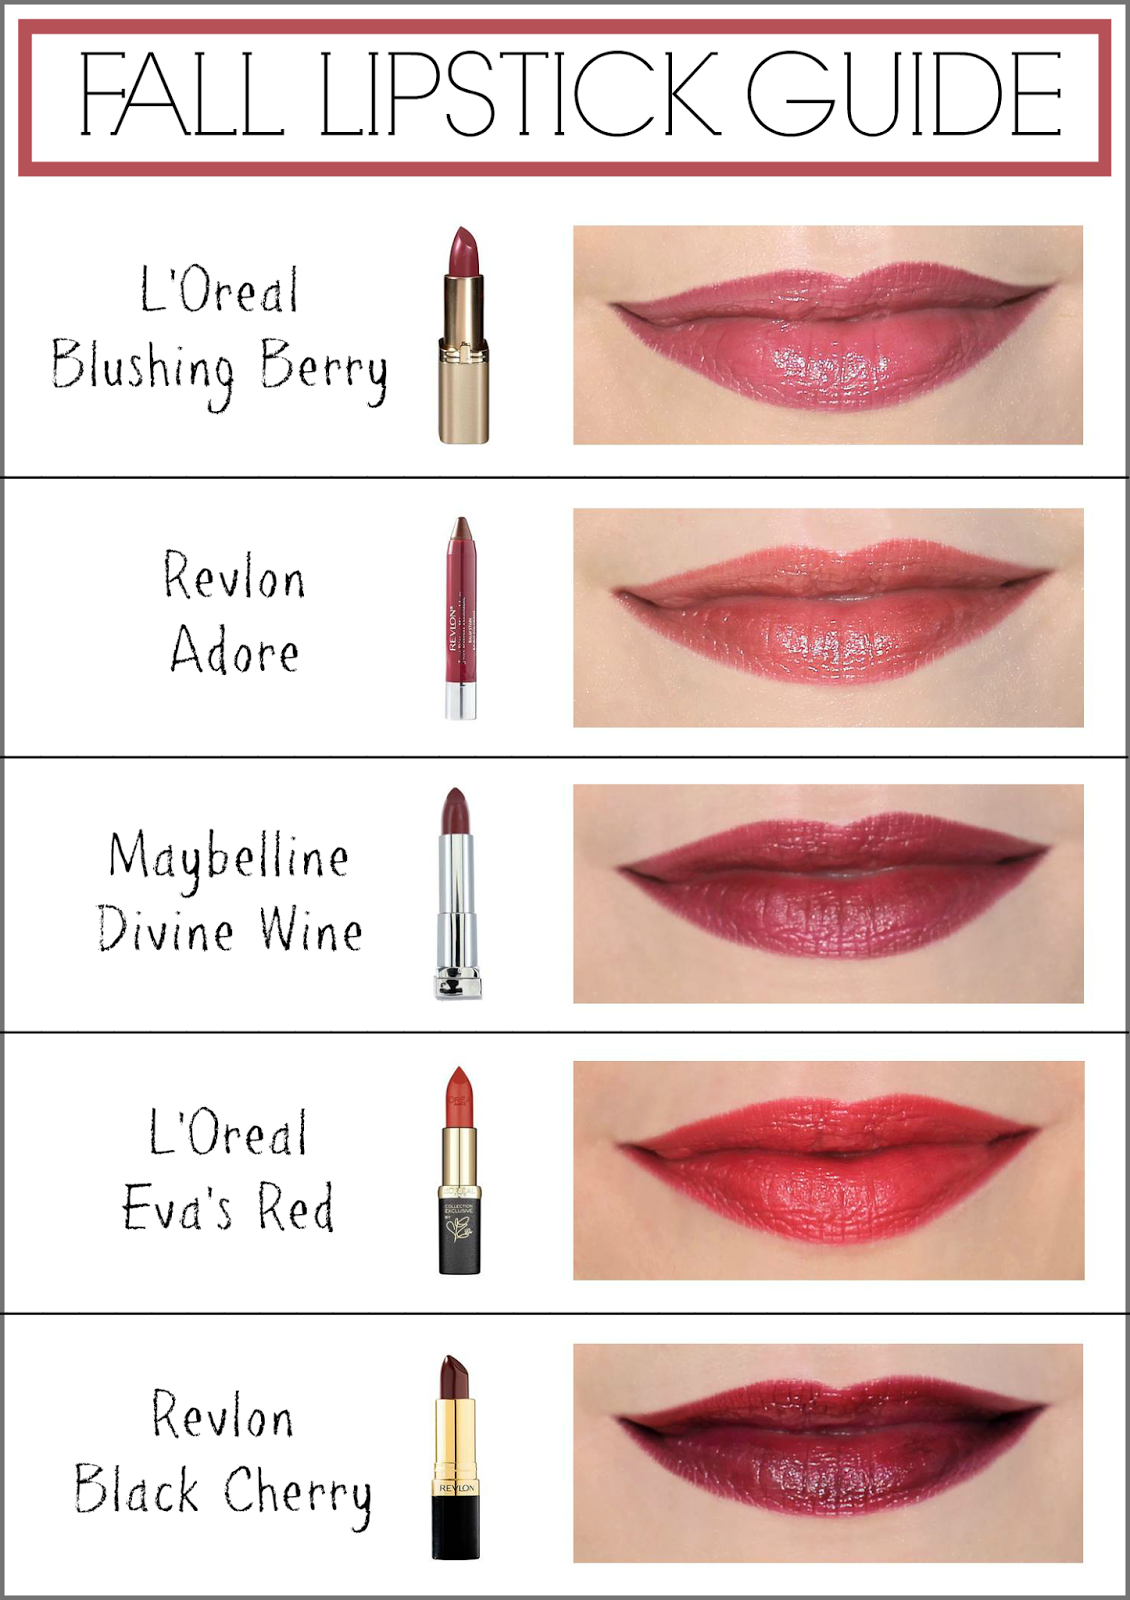 Fall Lipstick Guide - Penny Pincher Fashion